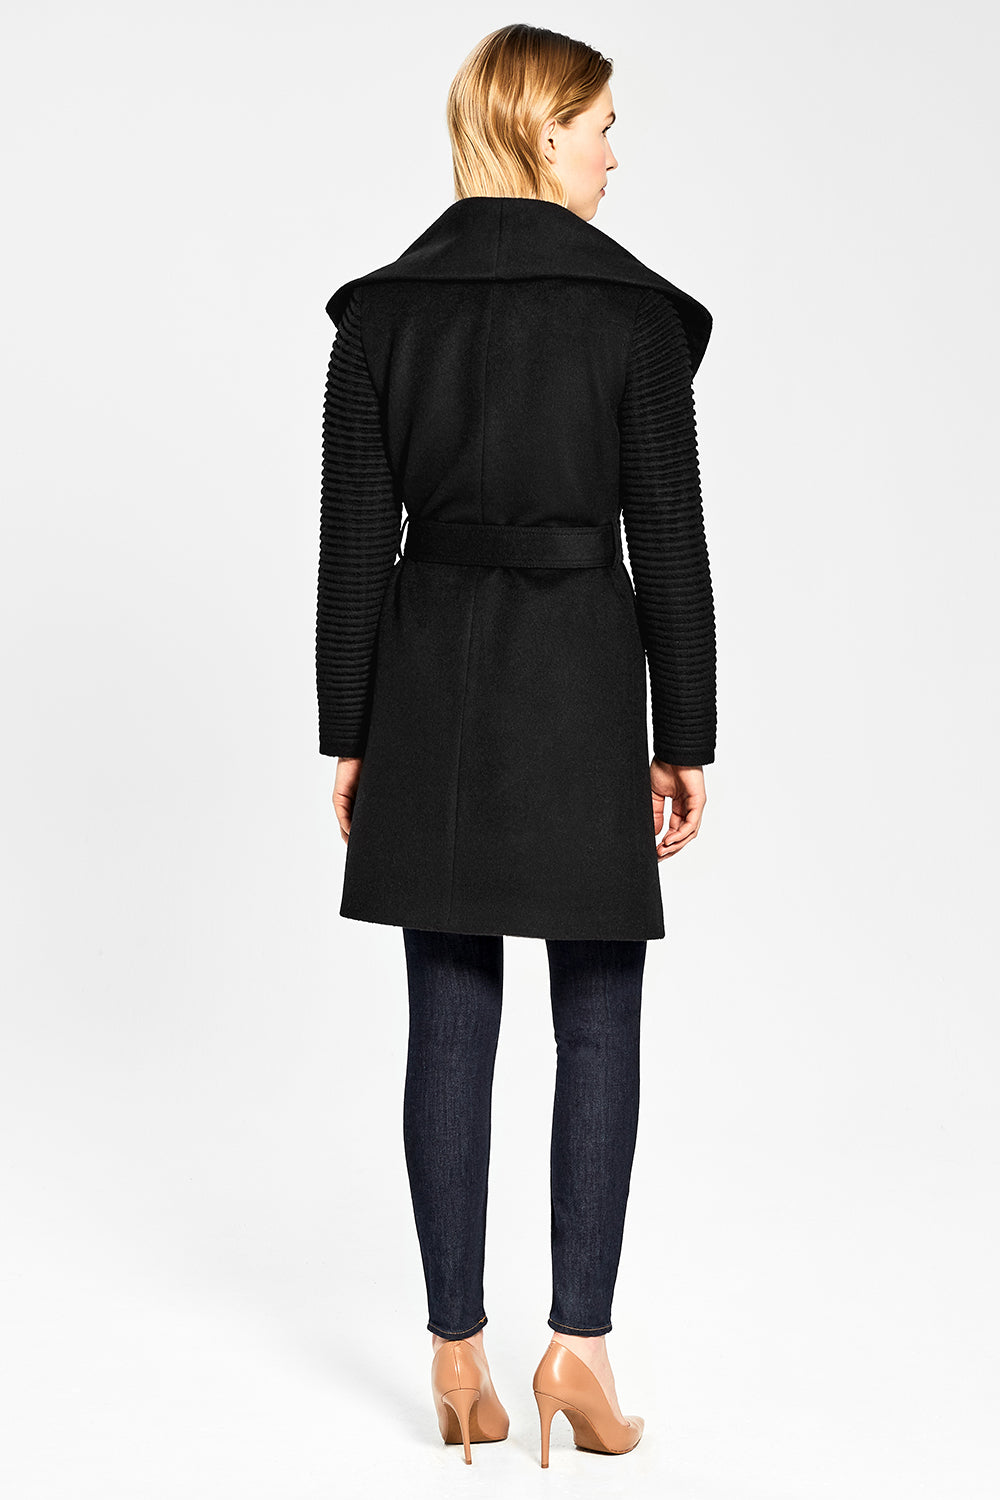 Sentaler Mid Length Shawl Collar Wrap Coat with Ribbed Sleeves featured in Baby Alpaca and available in Black. Seen from back.